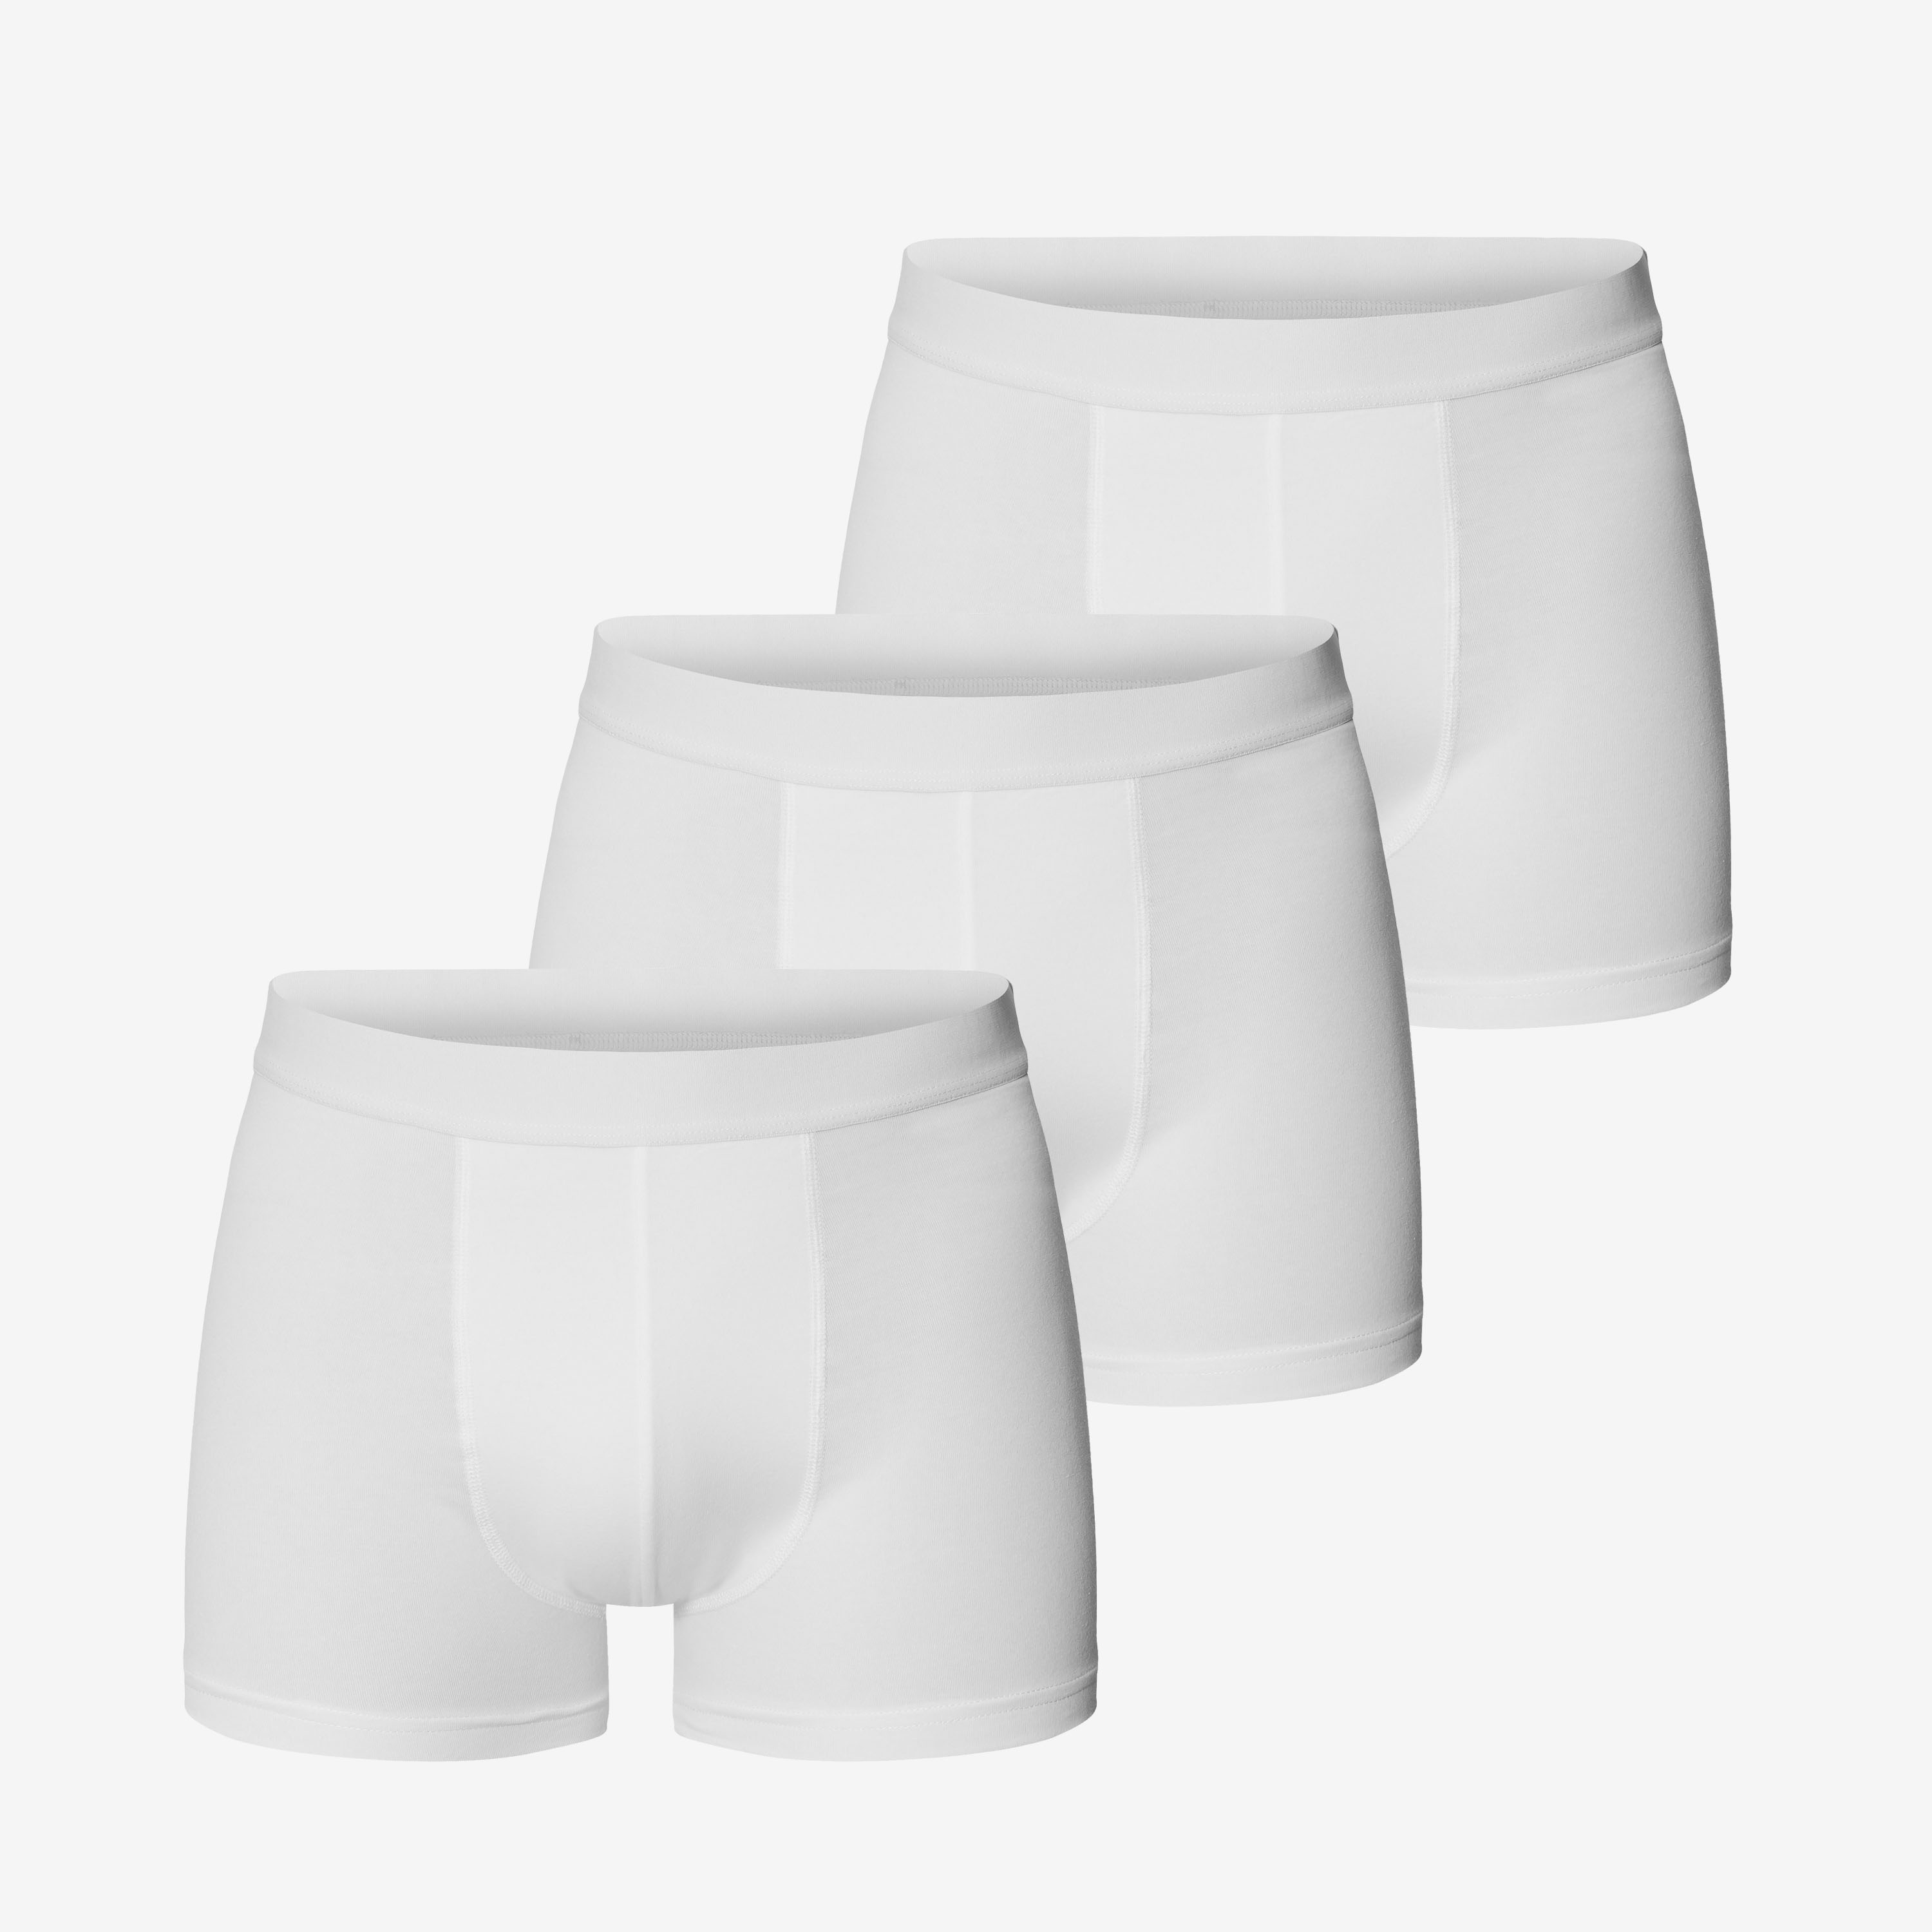 232201-3_Man_Boxer-Brief_white_CO